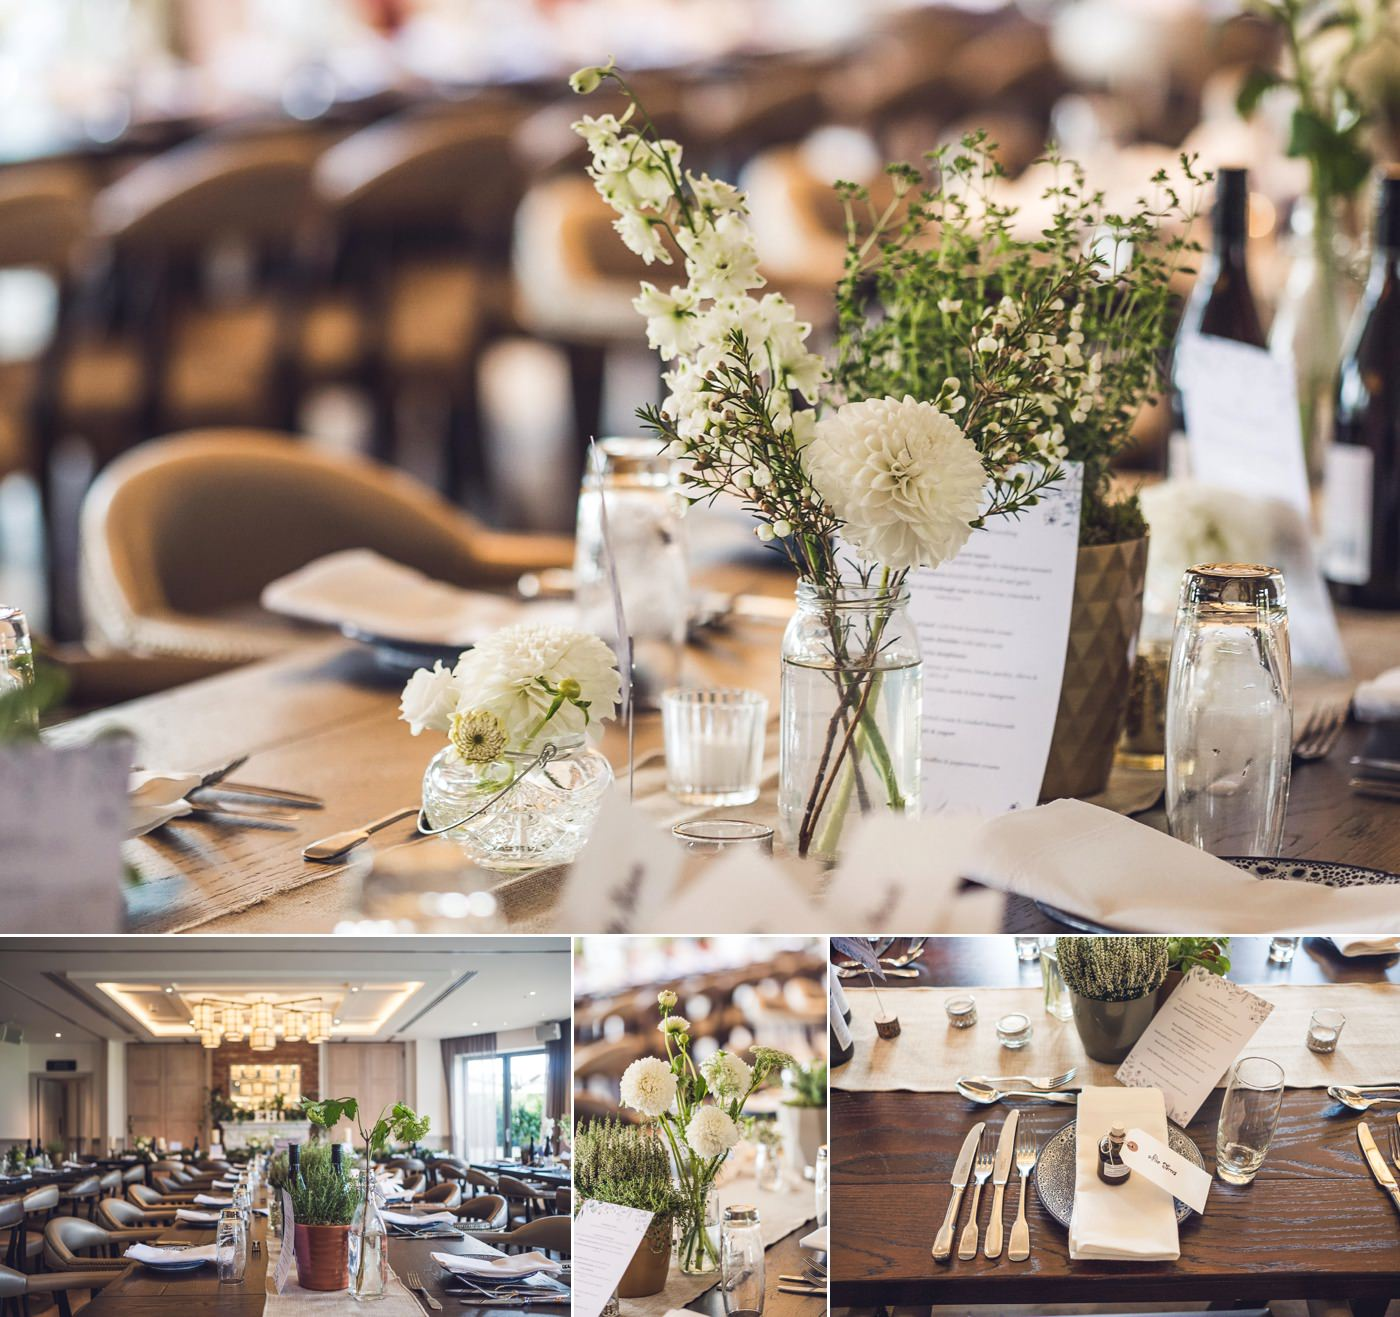 Cream and green floral decor with woodland vibes